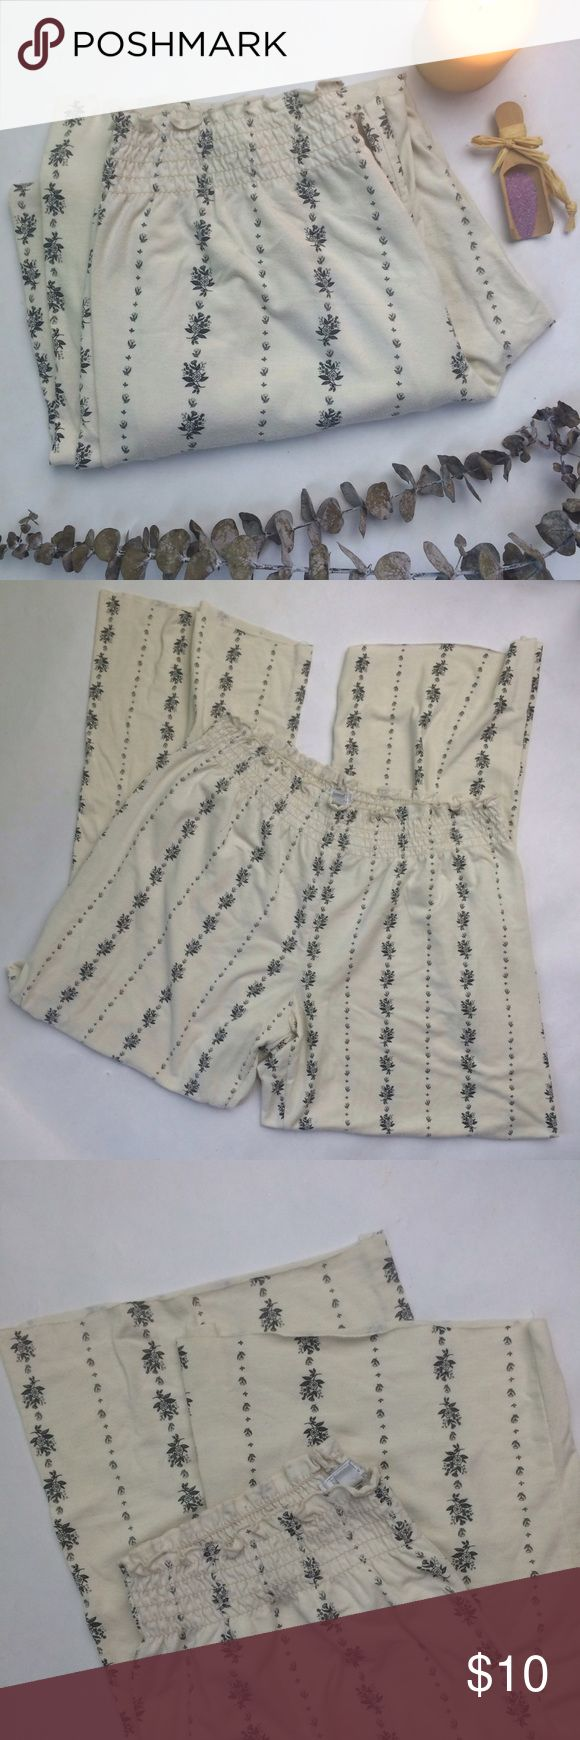 """✨NEW Listing✨Tart Intimates pajama bottoms Tart Intimates (of Tart Collections) cream pajama bottoms with grey stripes in a floral motif. Elastic waistband. The bottoms have been trimmed and have a raw edge, see third photo. Inseam length is now approx. 26"""". Size is M. 62% polyester/33% rayon/5% spandex. Not interested in trades. Tart Intimates Intimates & Sleepwear Pajamas"""